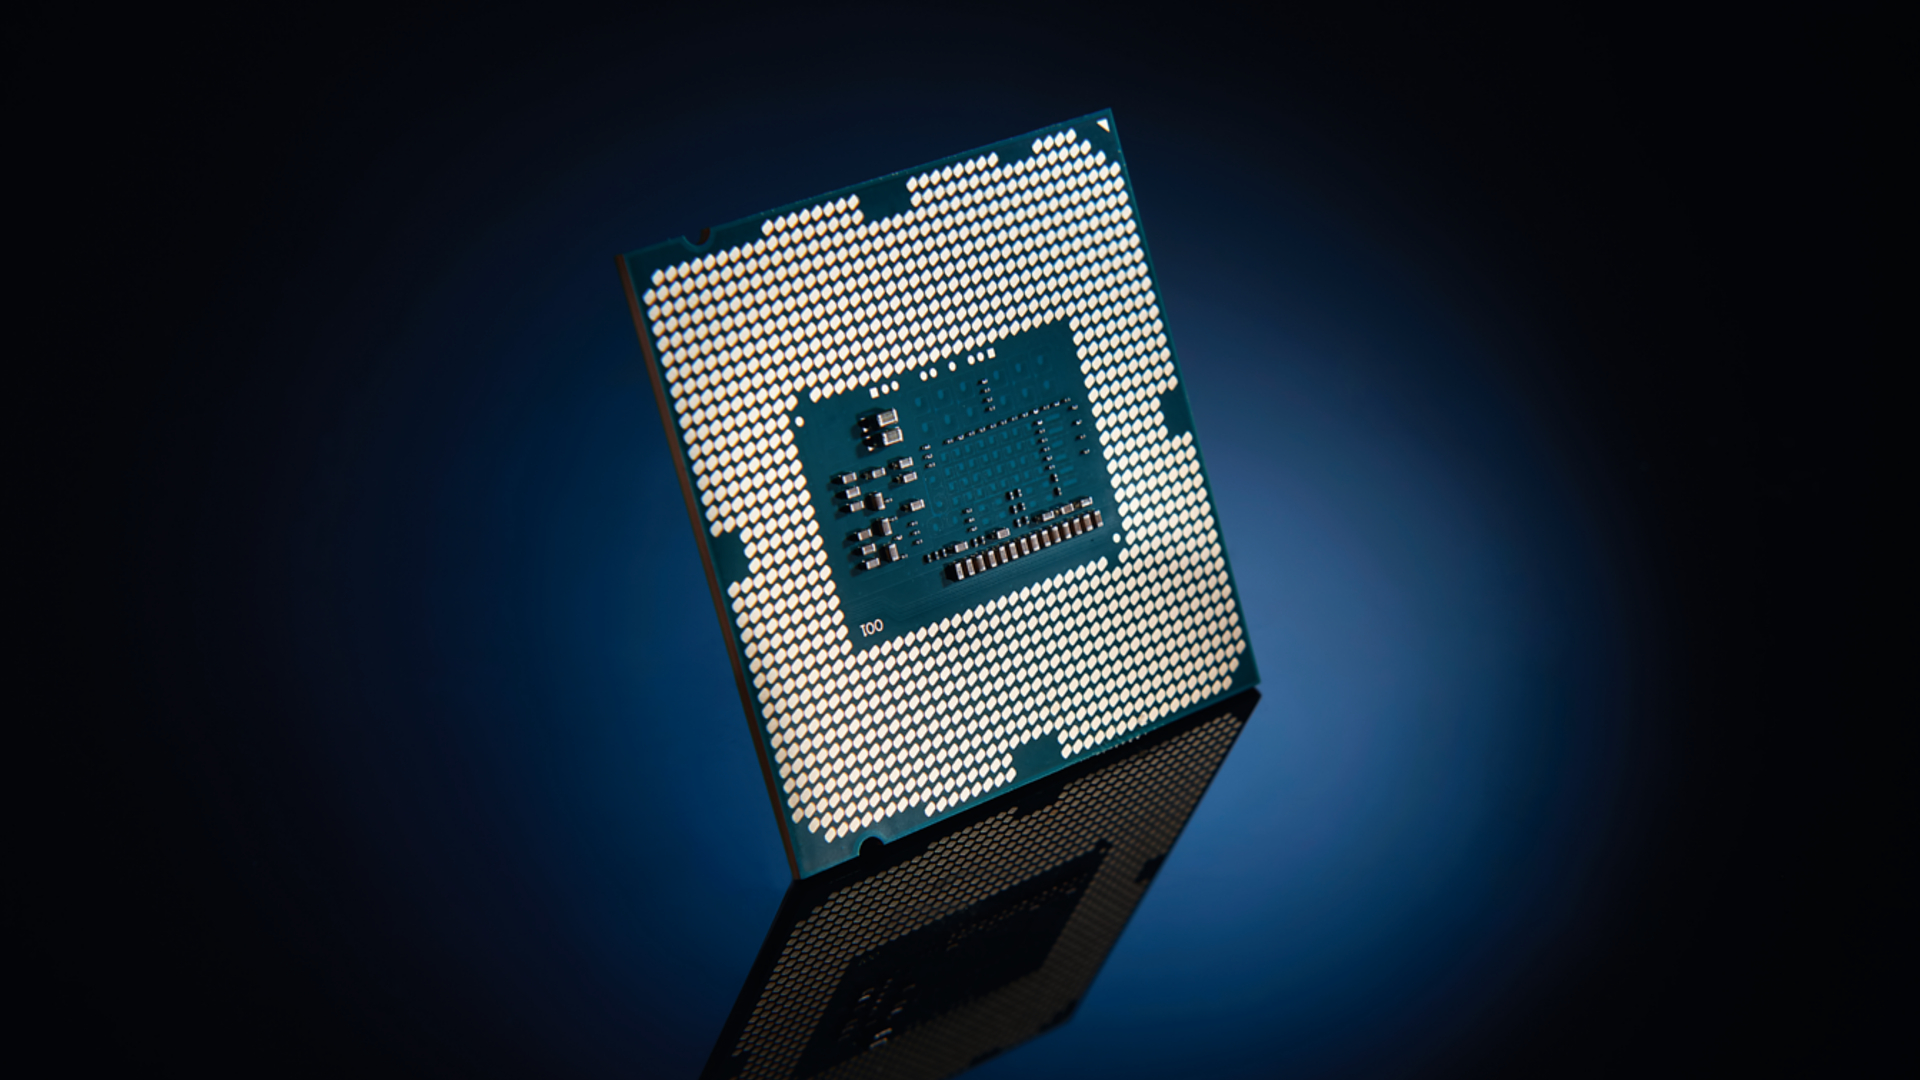 Intel Unveils New 8th Gen Intel Core i9 Processor for Laptops